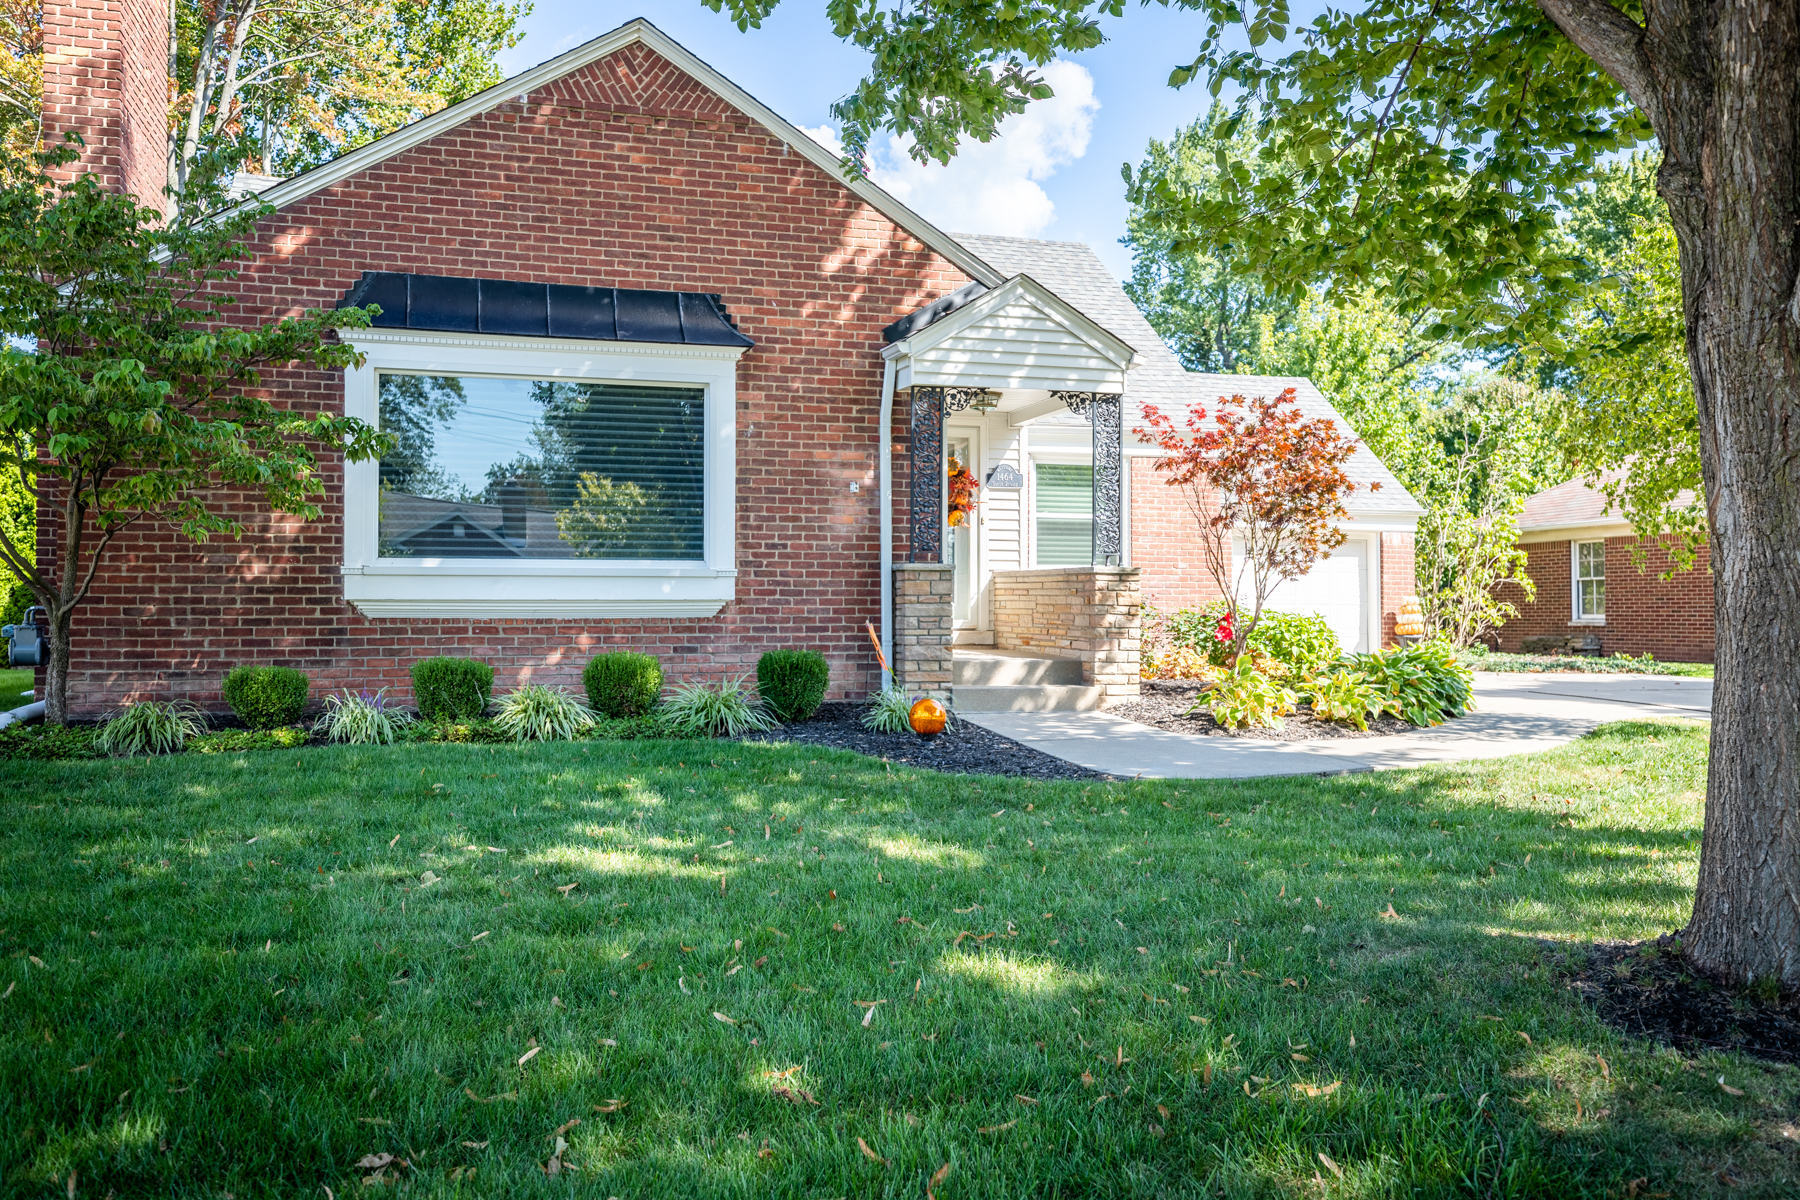 Single Family Homes for Sale at Grosse Pointe Woods 1464 S Renaud Grosse Pointe Woods, Michigan 48236 United States